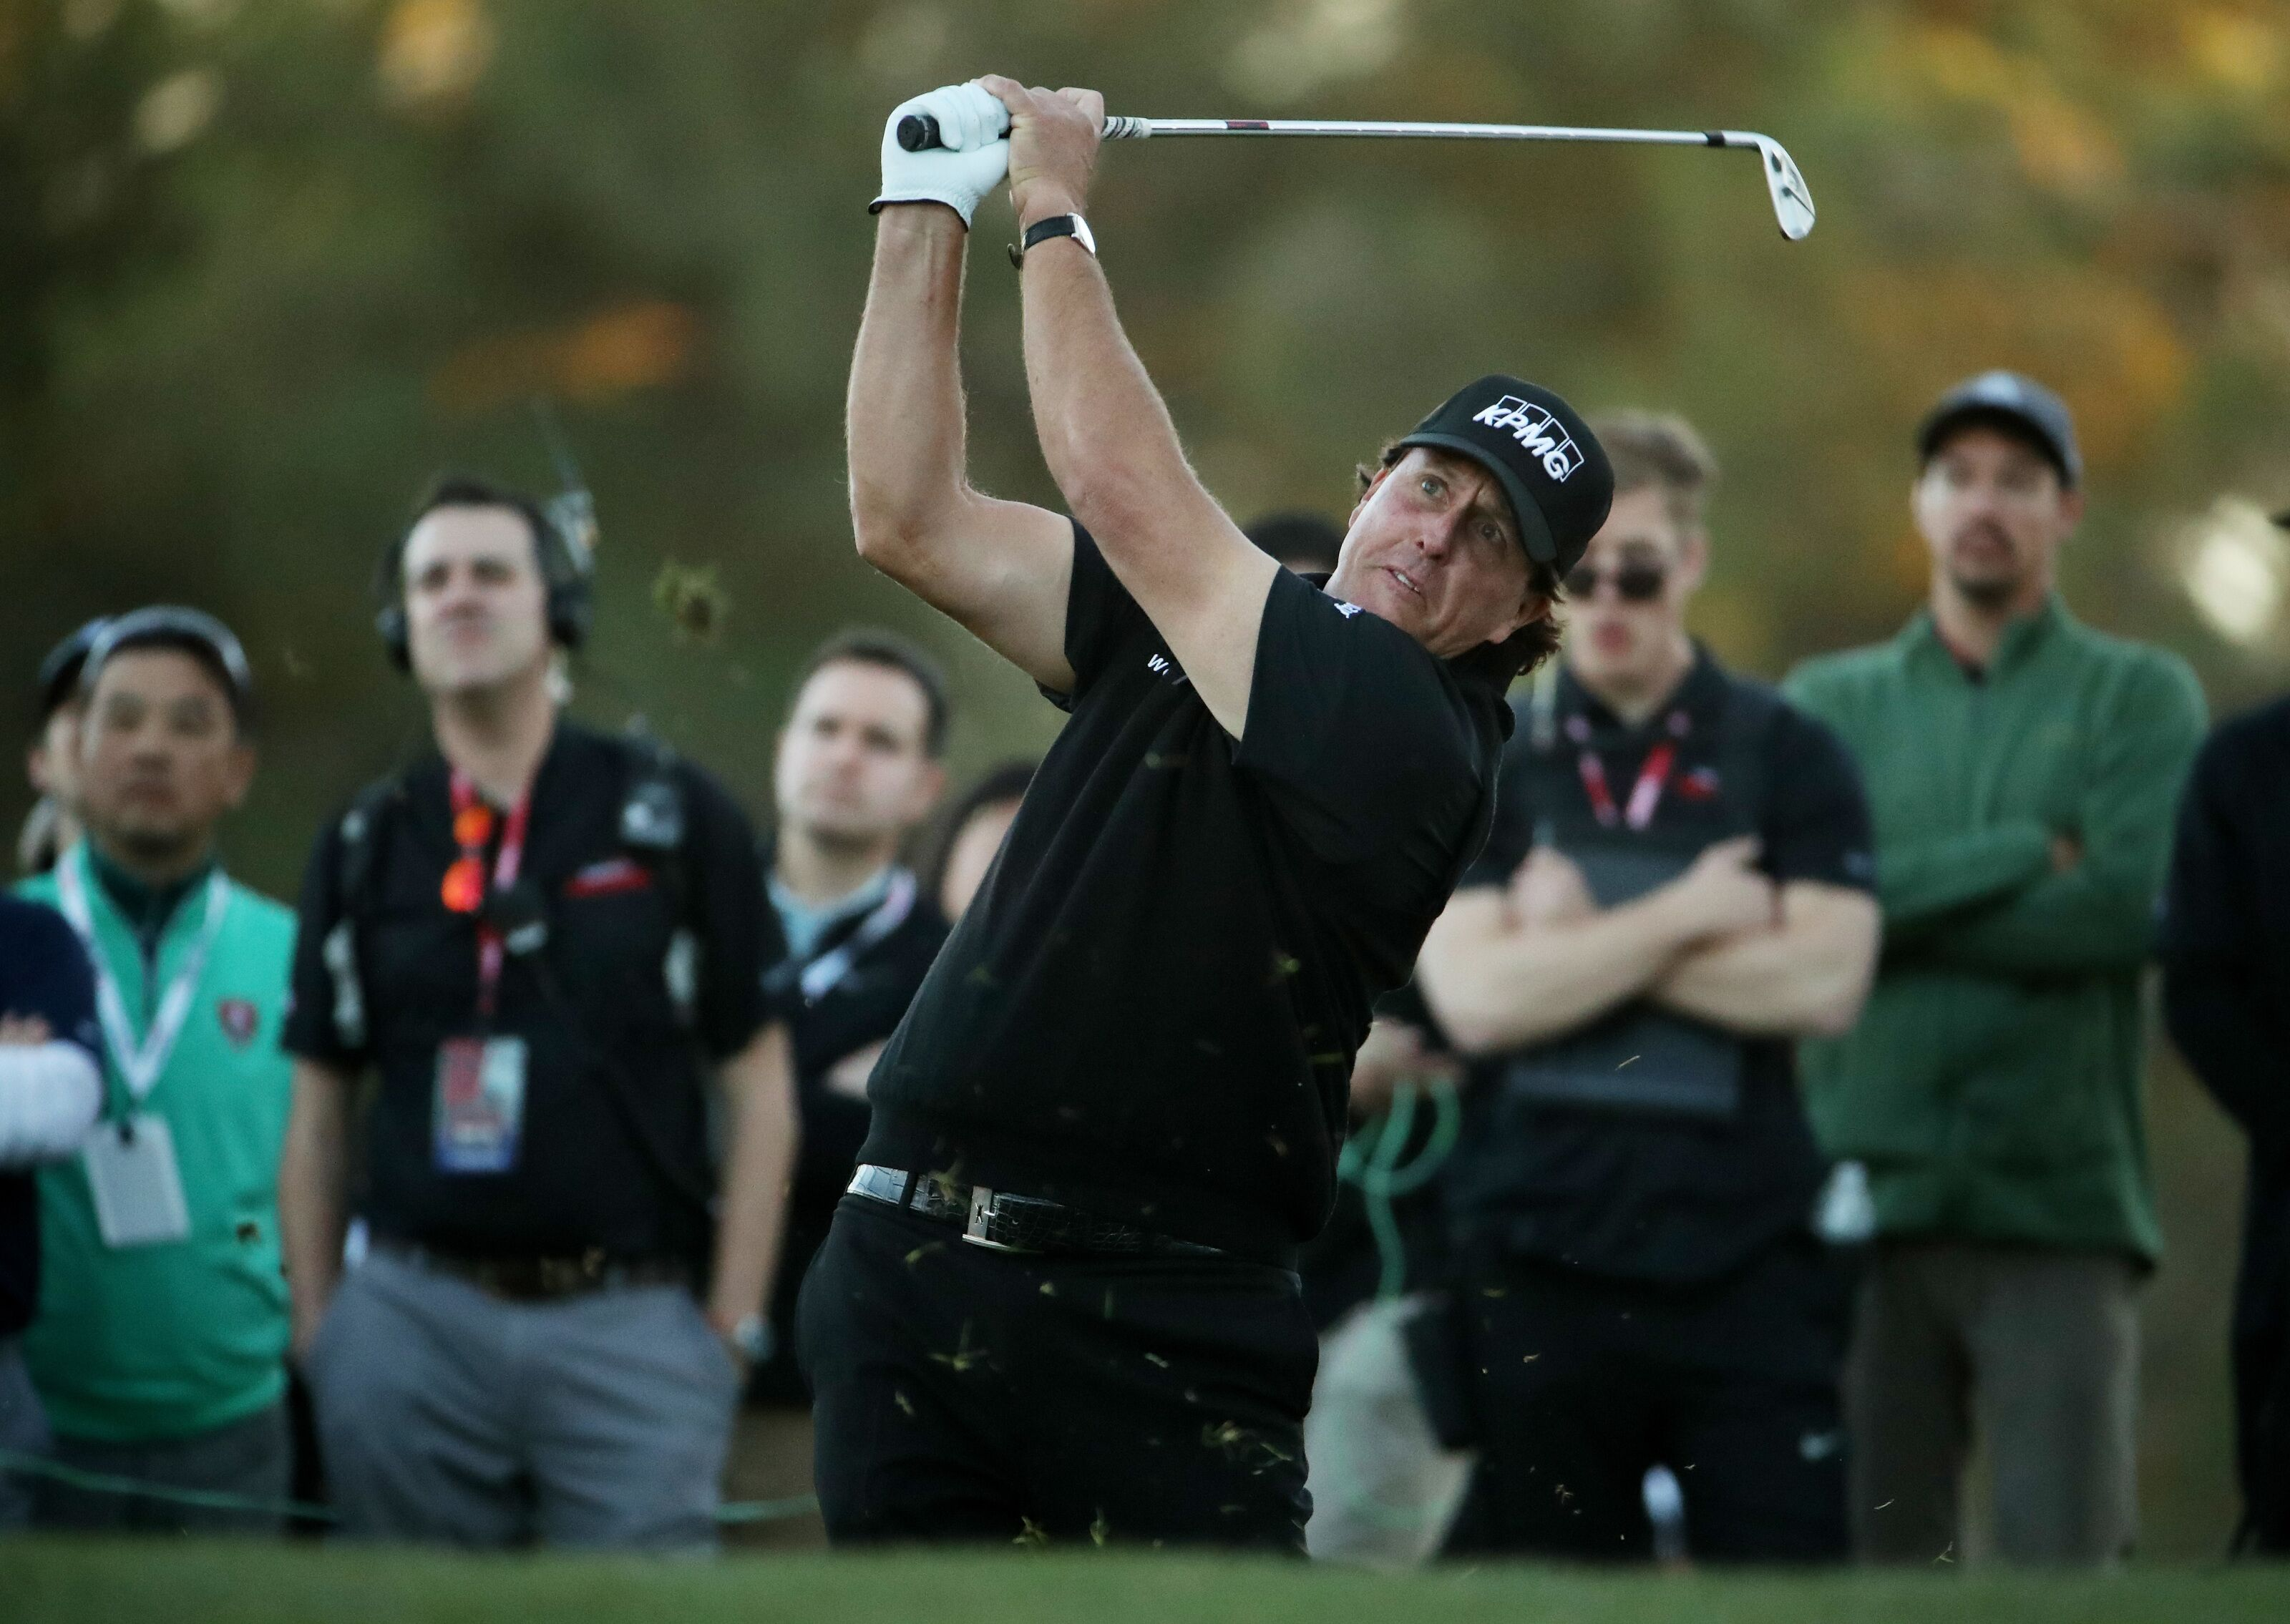 Phil Mickelson: A look ahead at what's next for Lefty in 2019